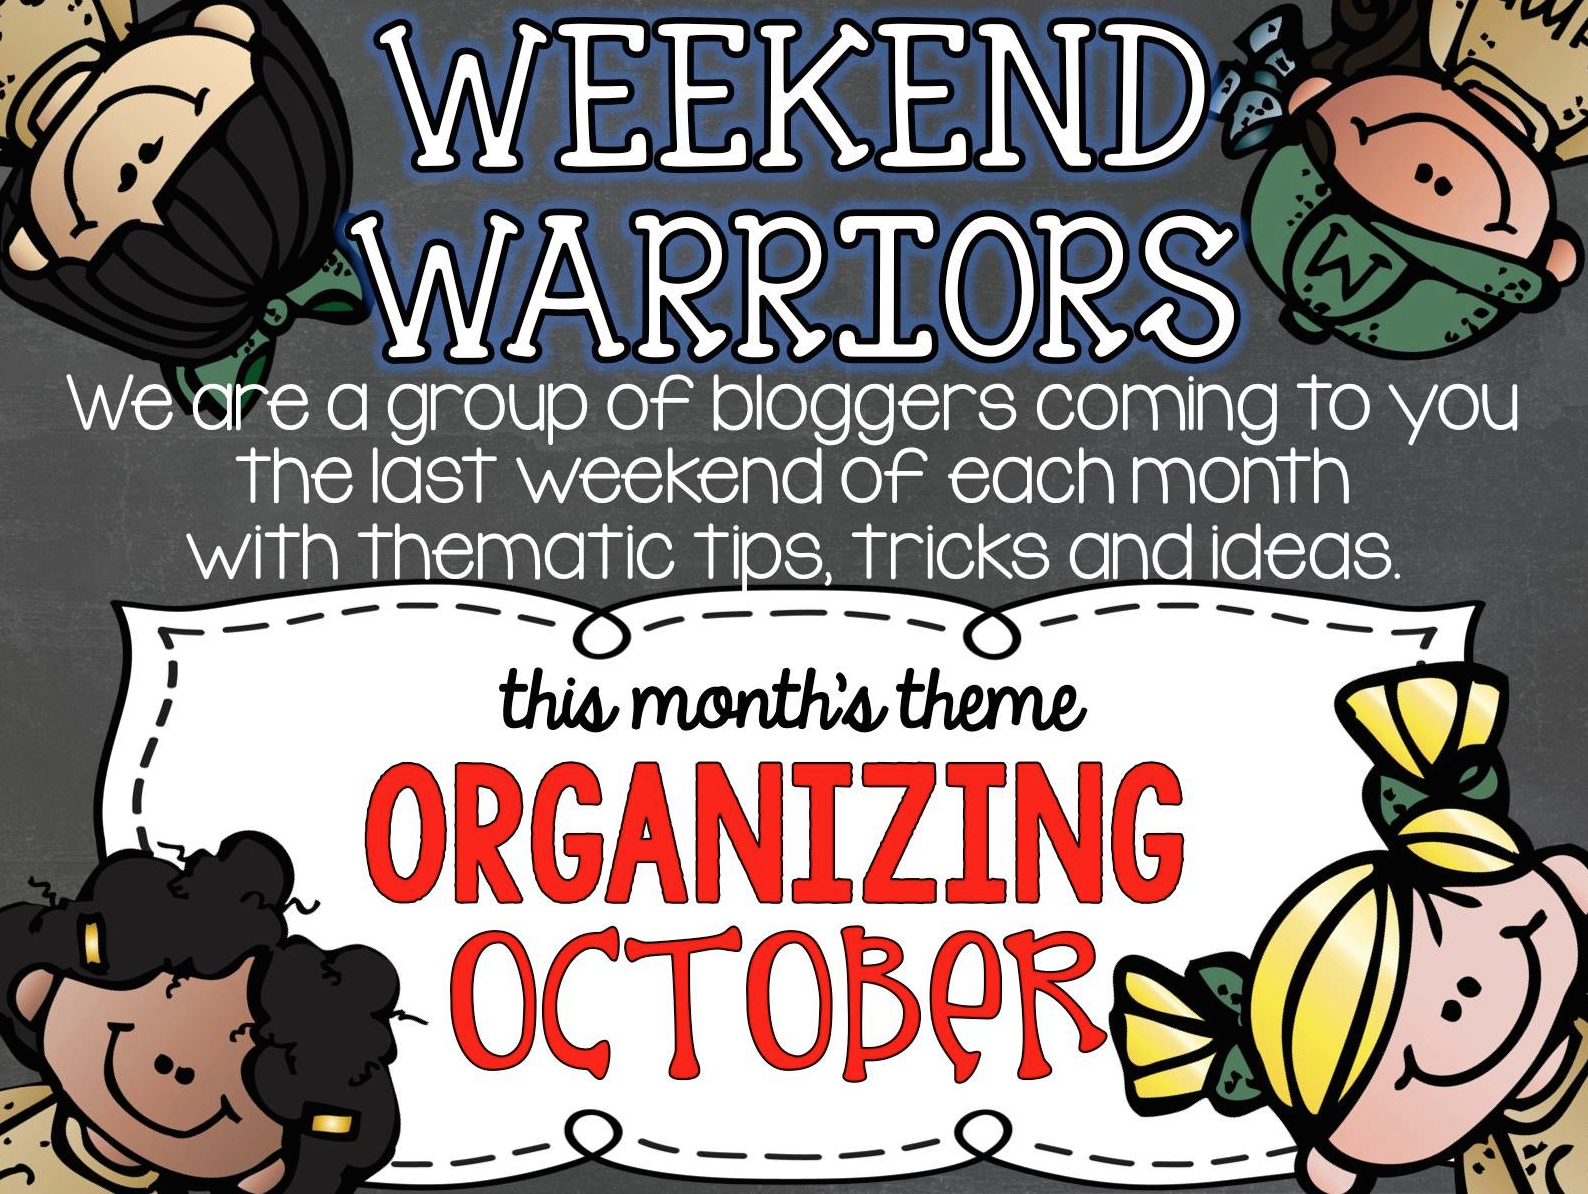 classroom library organization crayons and whimsy Weekend Warriors